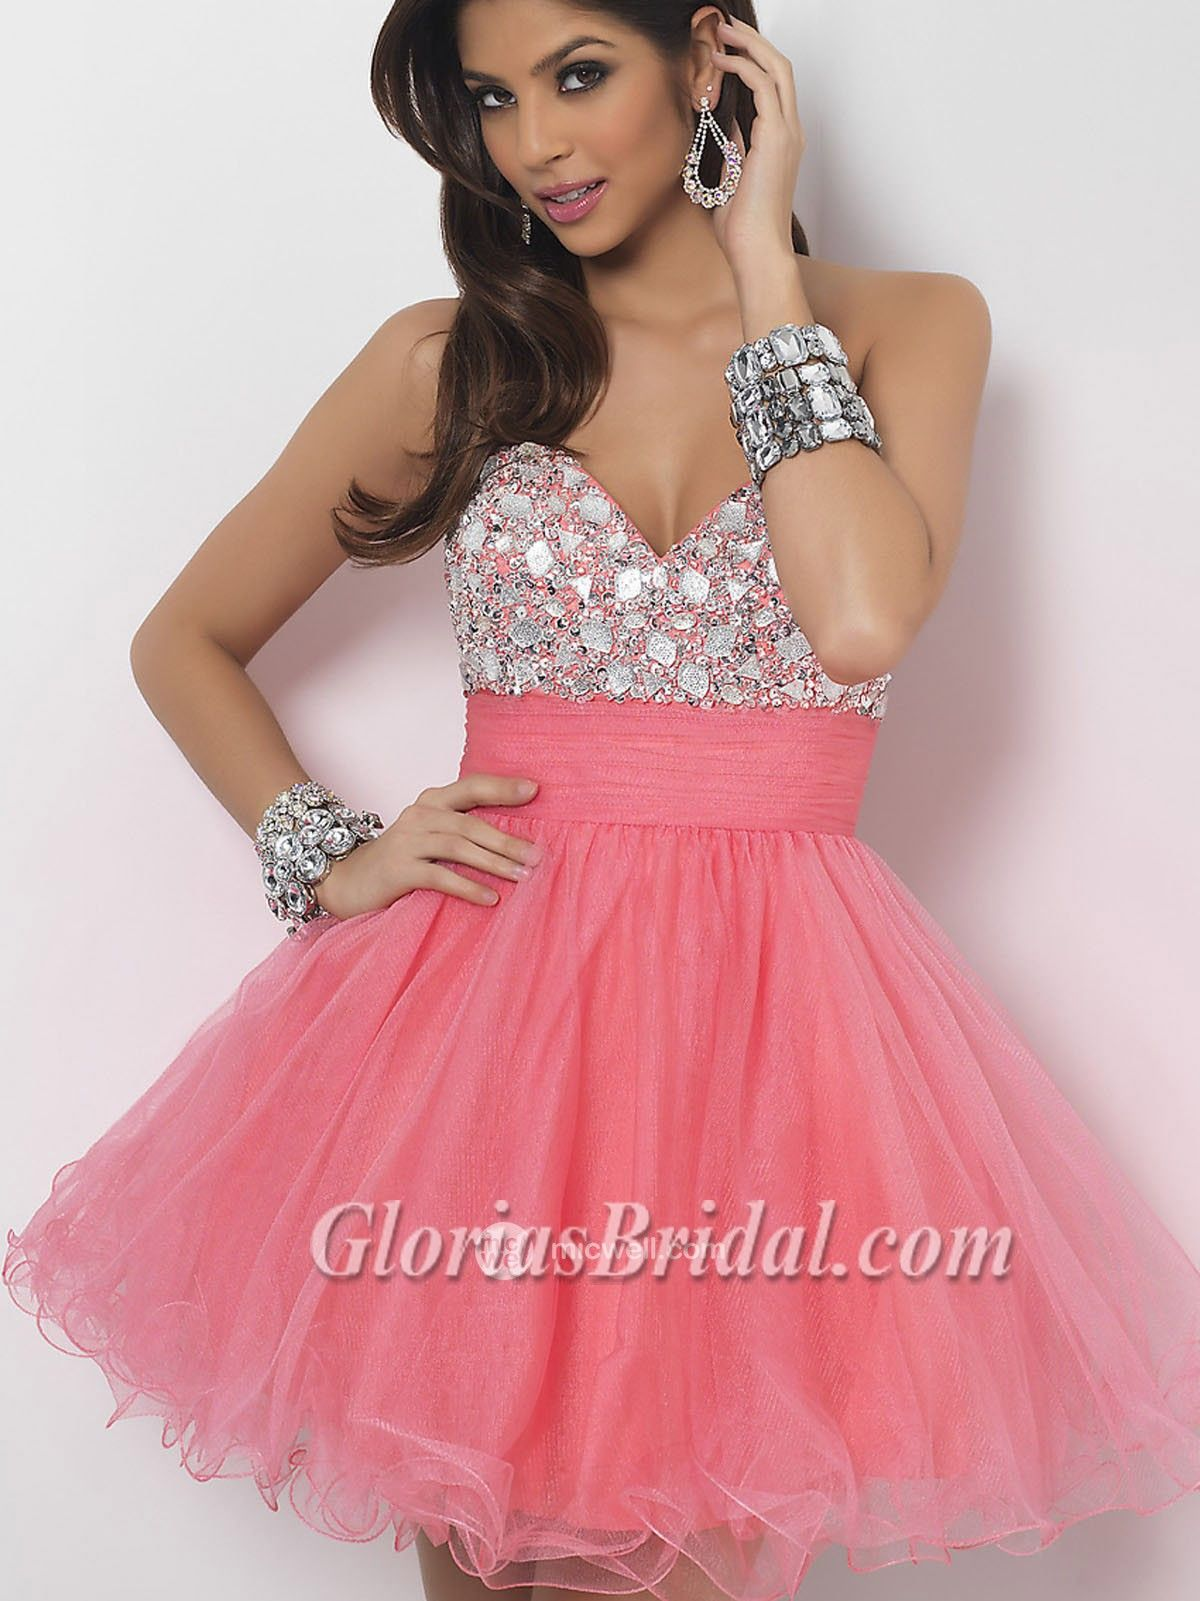 2013 New Style Cute Strapless Sweetheart Short Party Dress Sweet ...